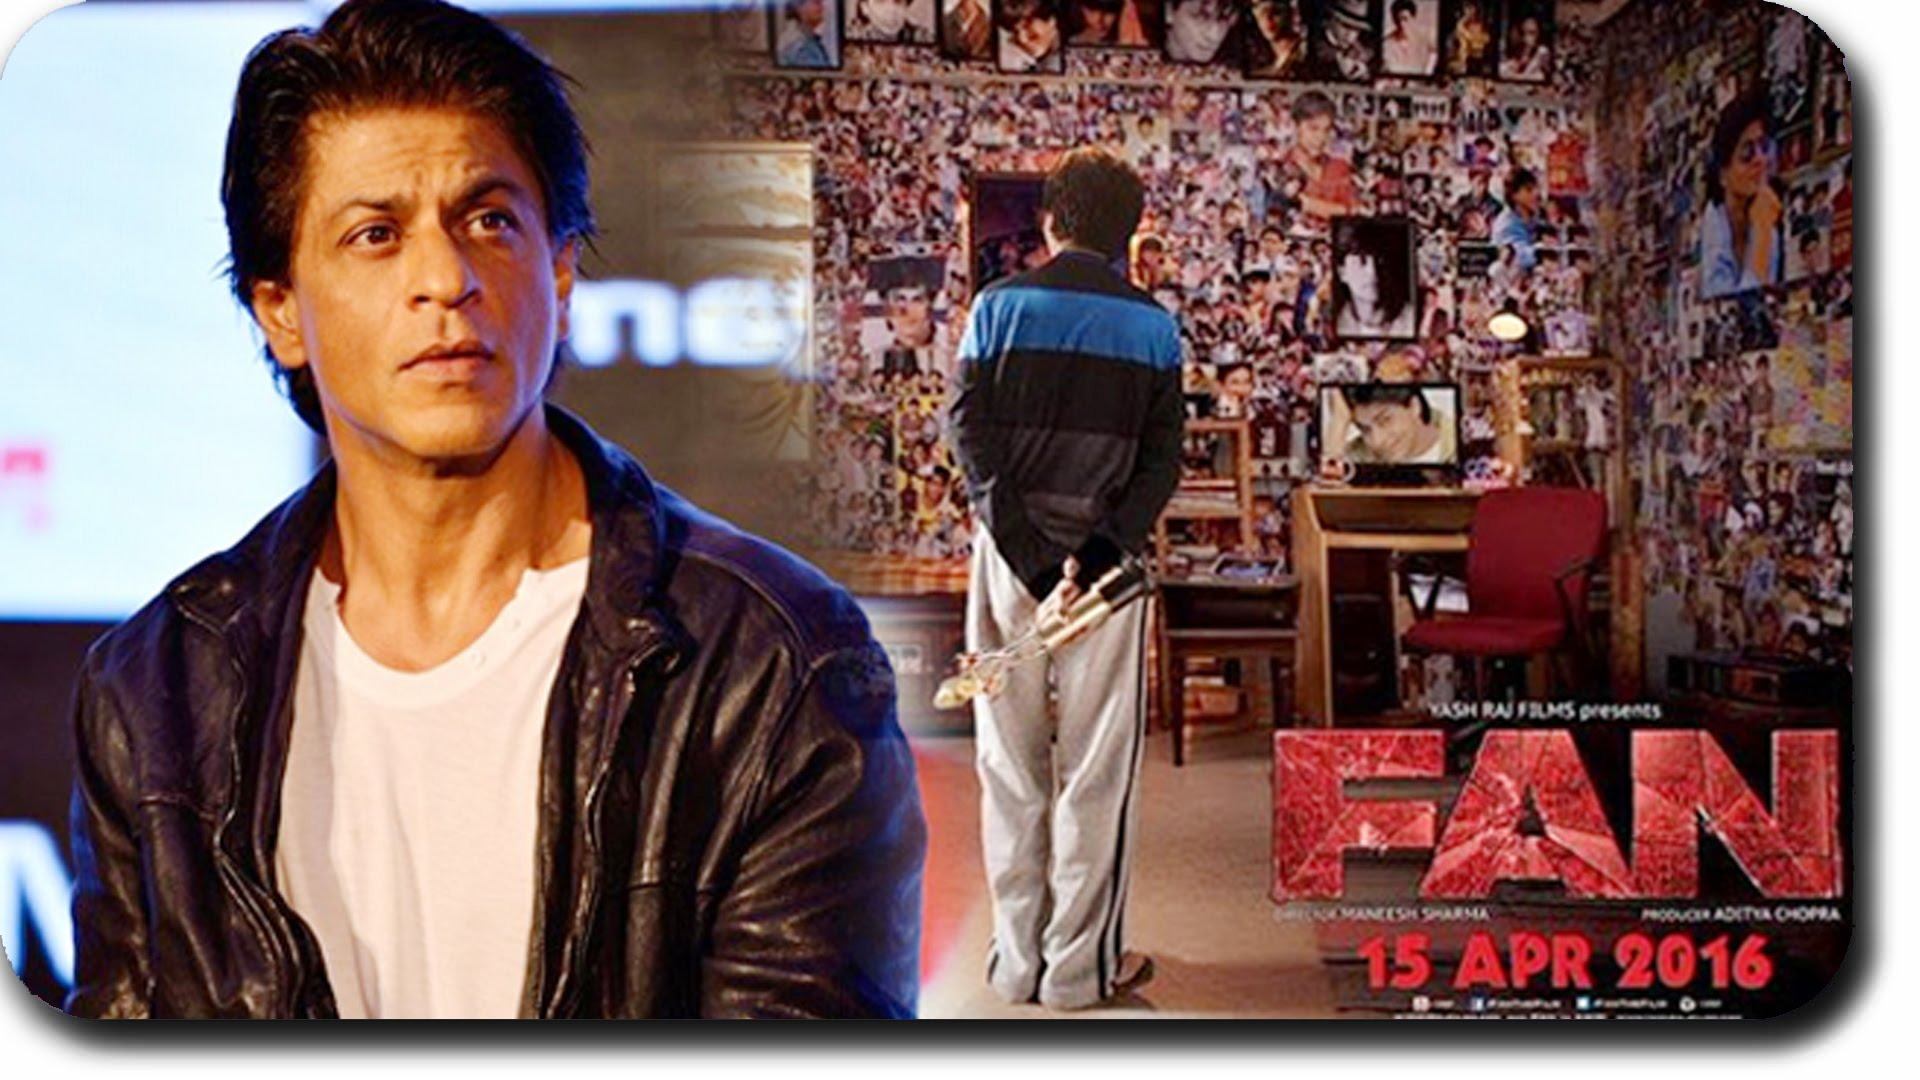 Shah Rukh Khan Fan 2016 Wallpapers: 'Fan' Review: Shah Rukh Khan At His Finest In This Dark